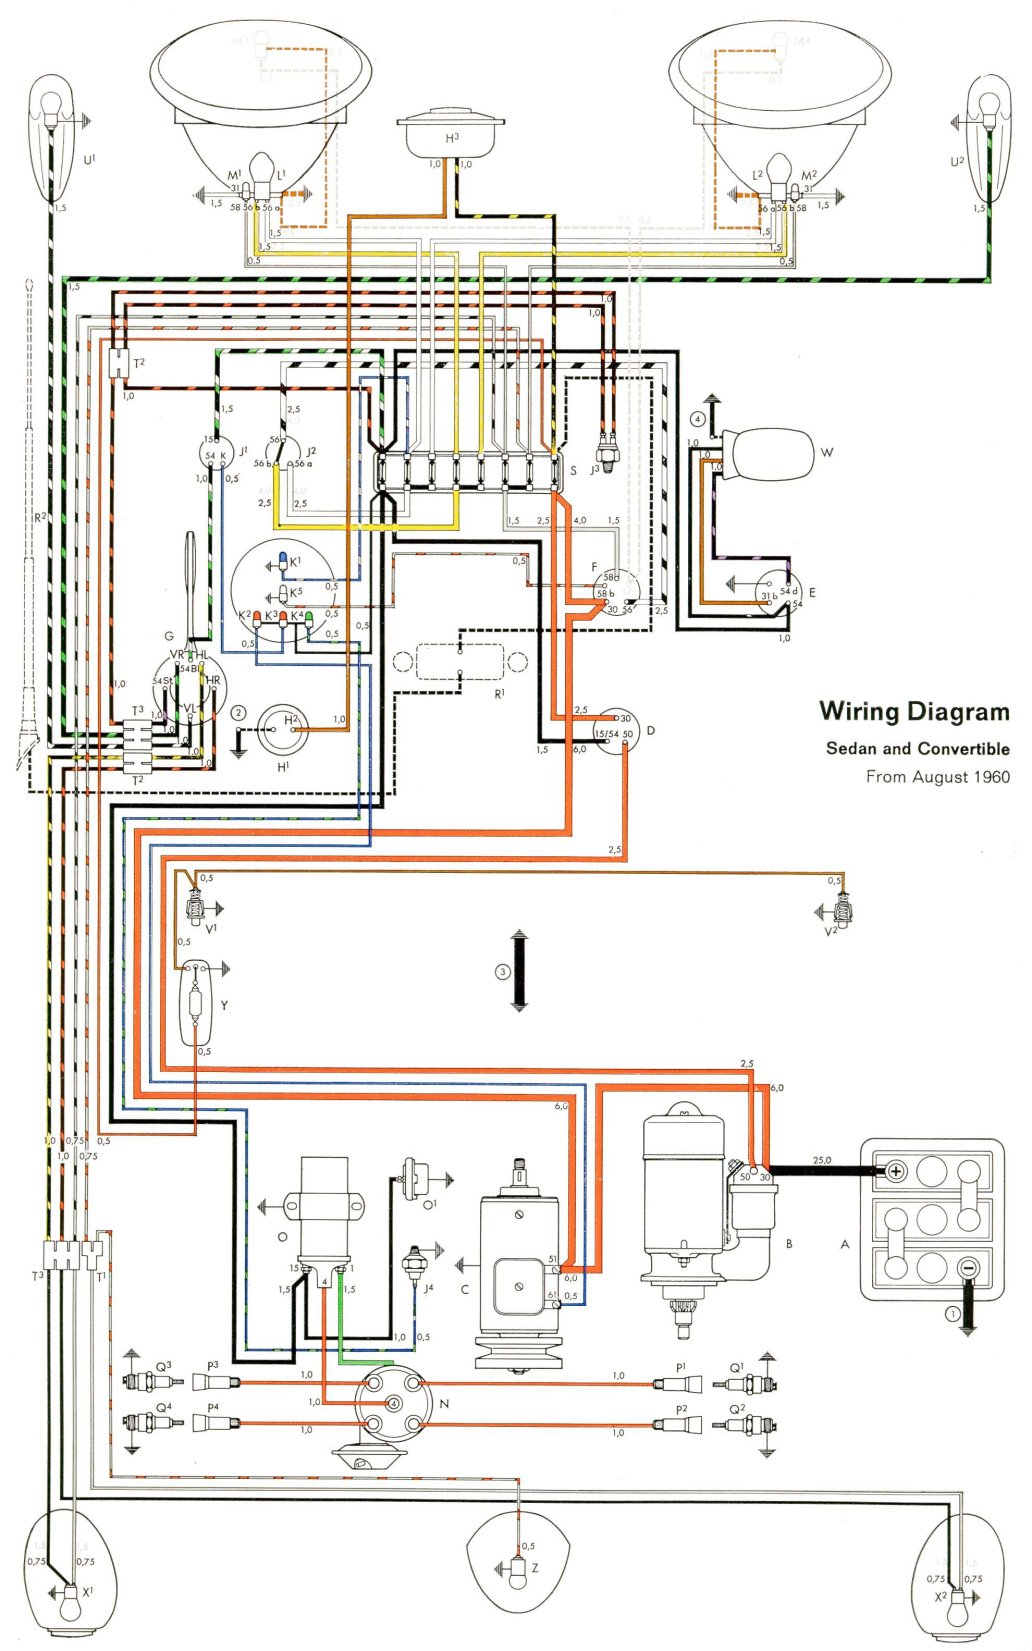 bug_61 1961 beetle wiring diagram thegoldenbug com vw beach buggy wiring diagram at n-0.co